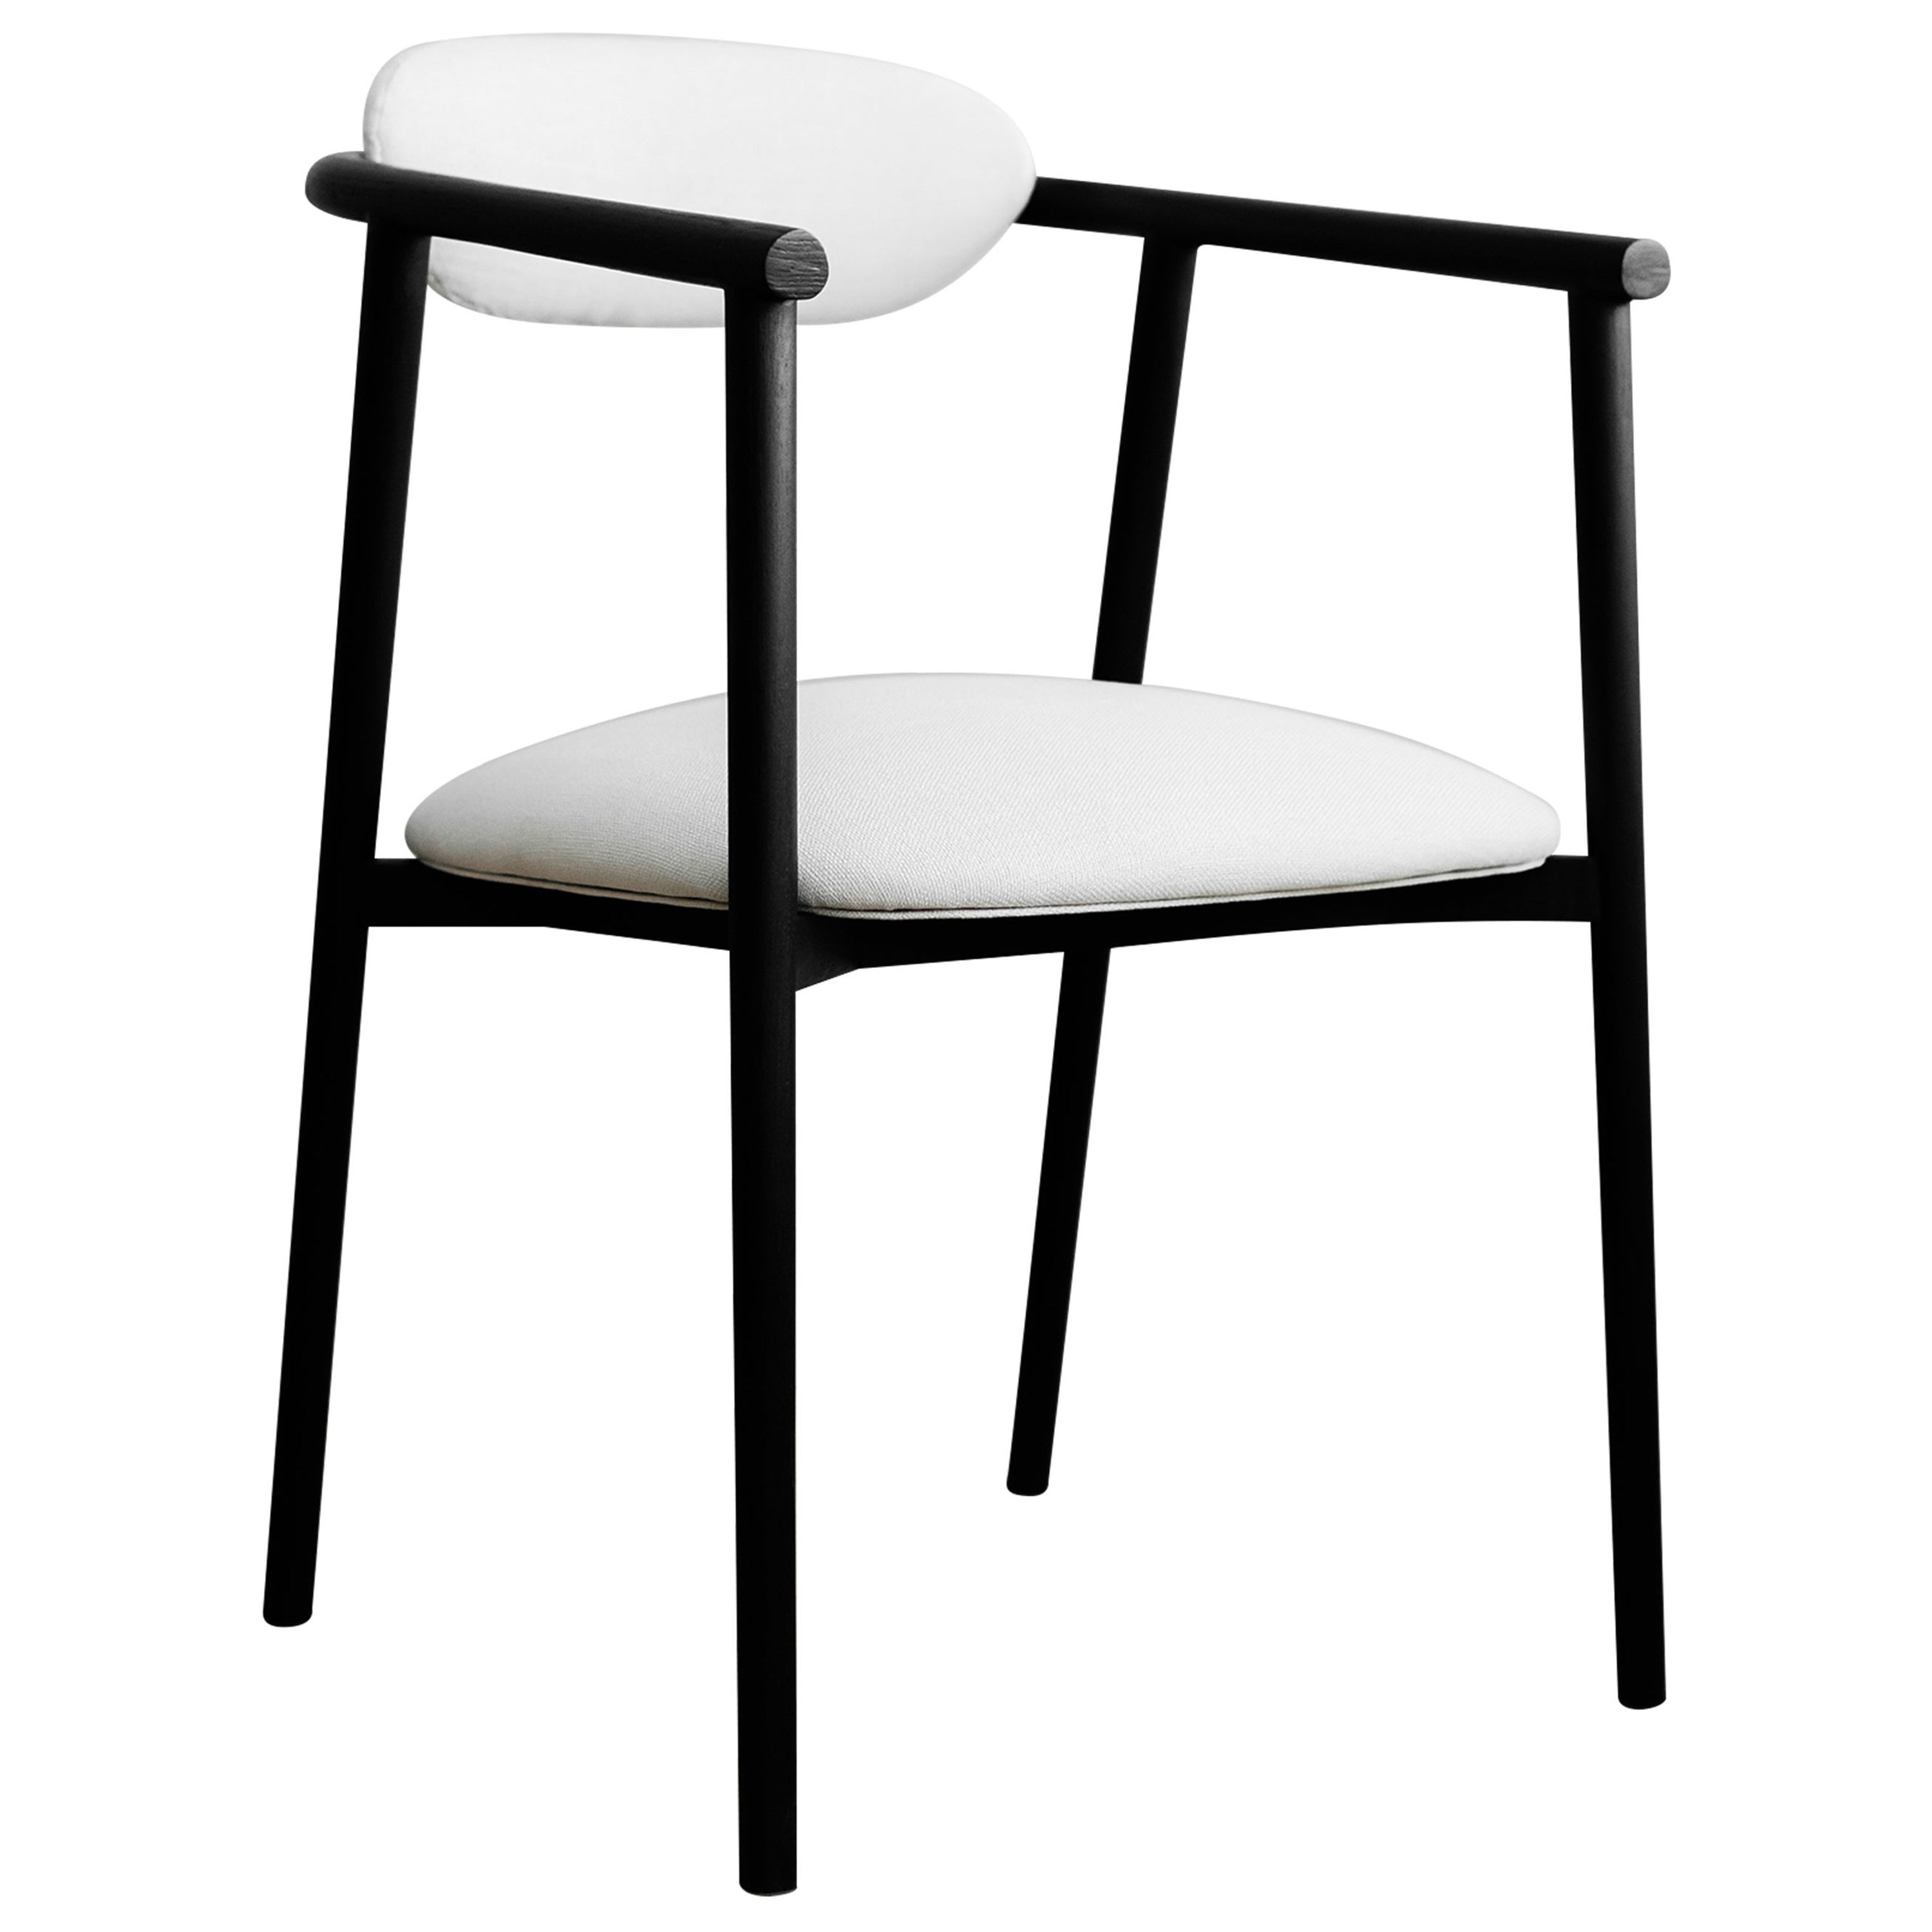 Neutra Black Inked Oak Chair with White Upholstered Backrest and Seat